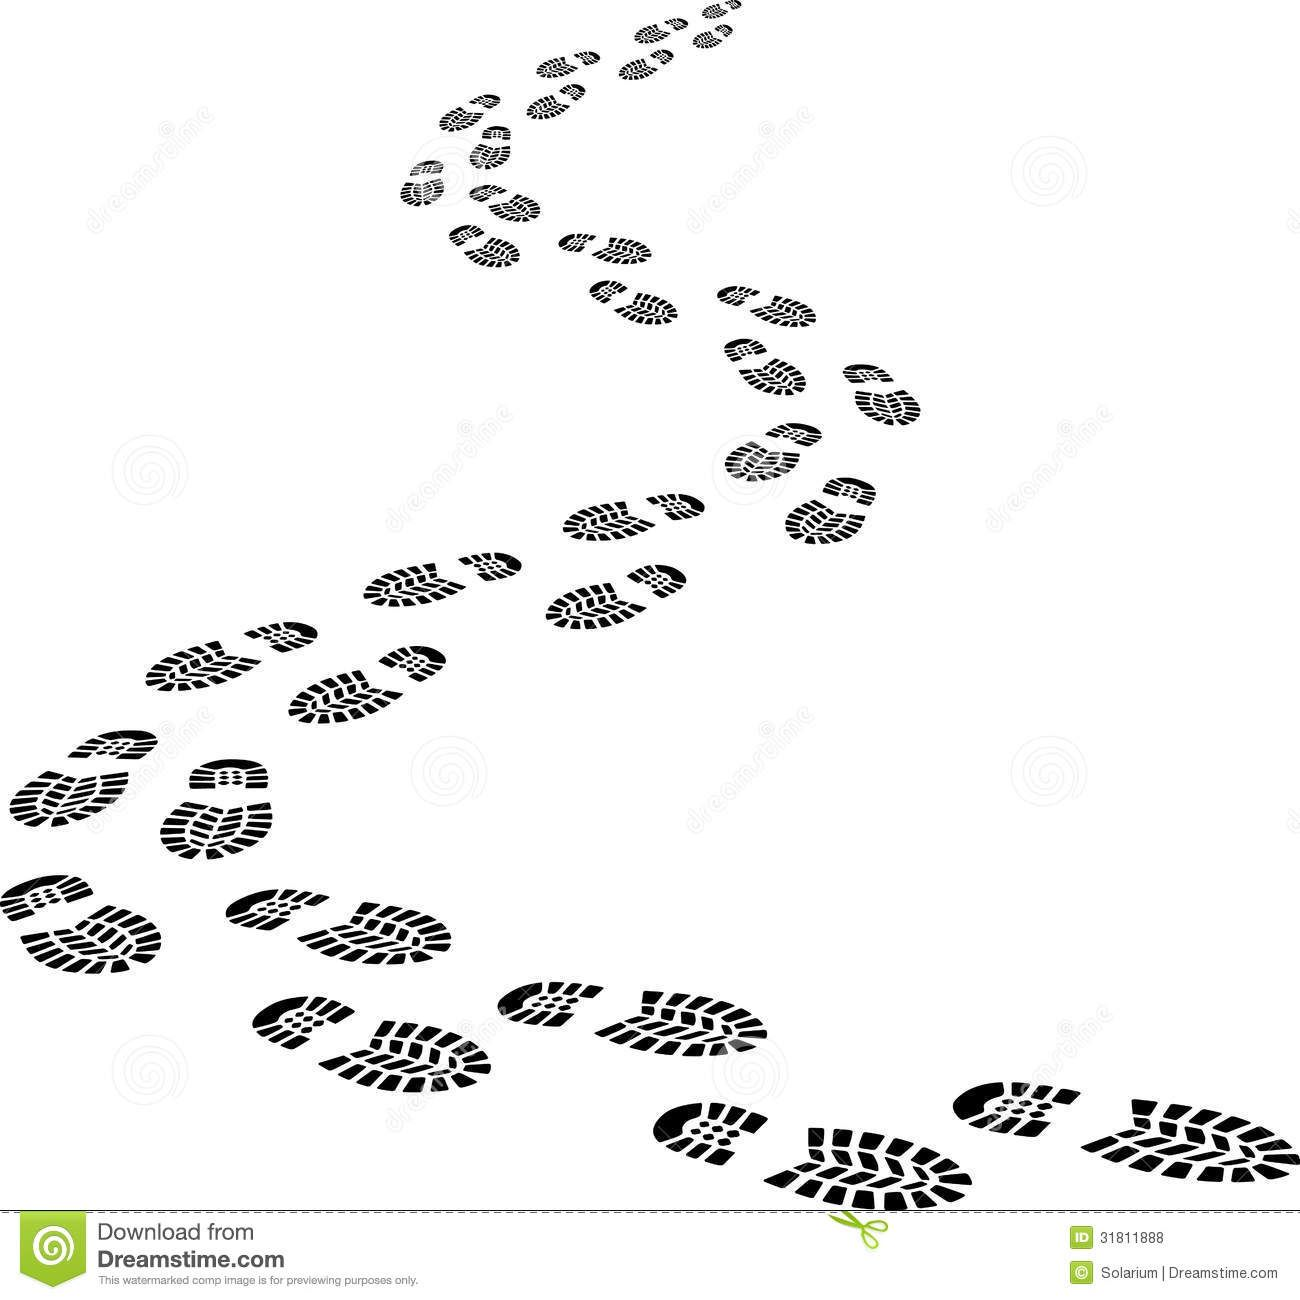 Left behind clipart graphic royalty free stock Footprints (or ) are the impressions or images left behind by a ... graphic royalty free stock